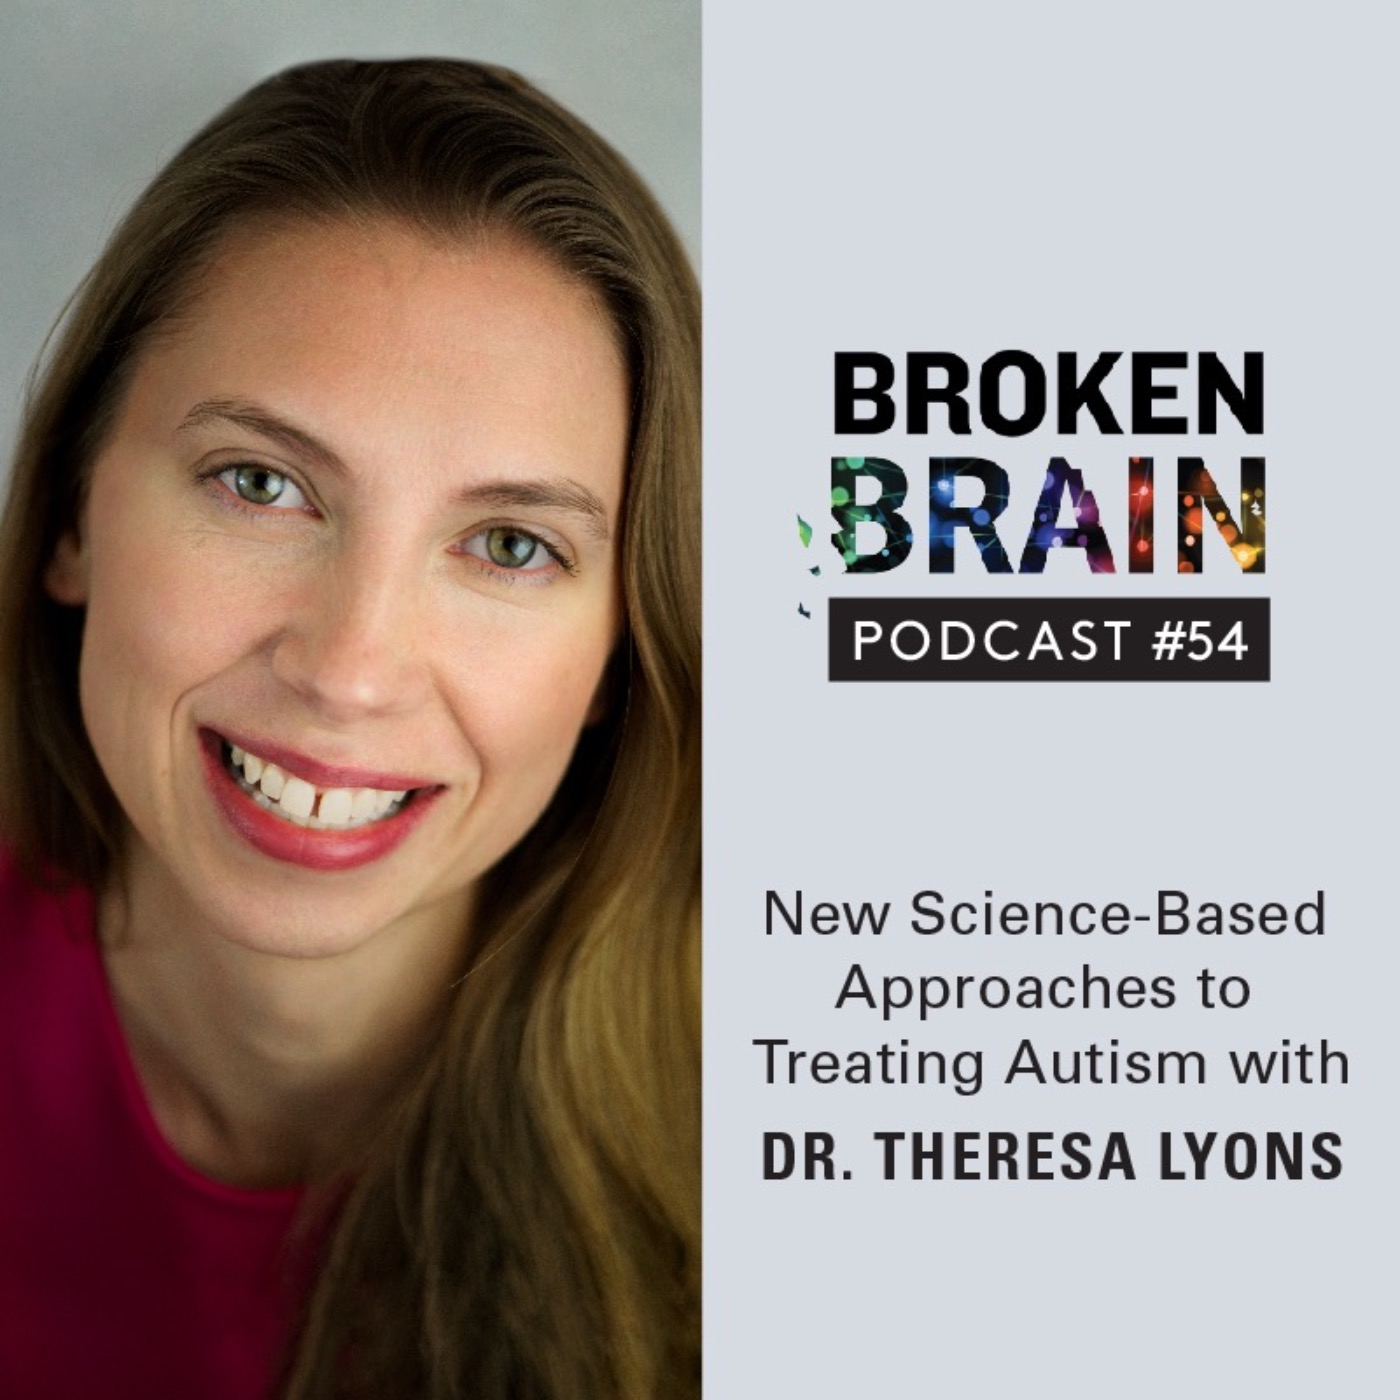 #54: New Science-Based Approaches to Treating Autism with Dr. Theresa Lyons